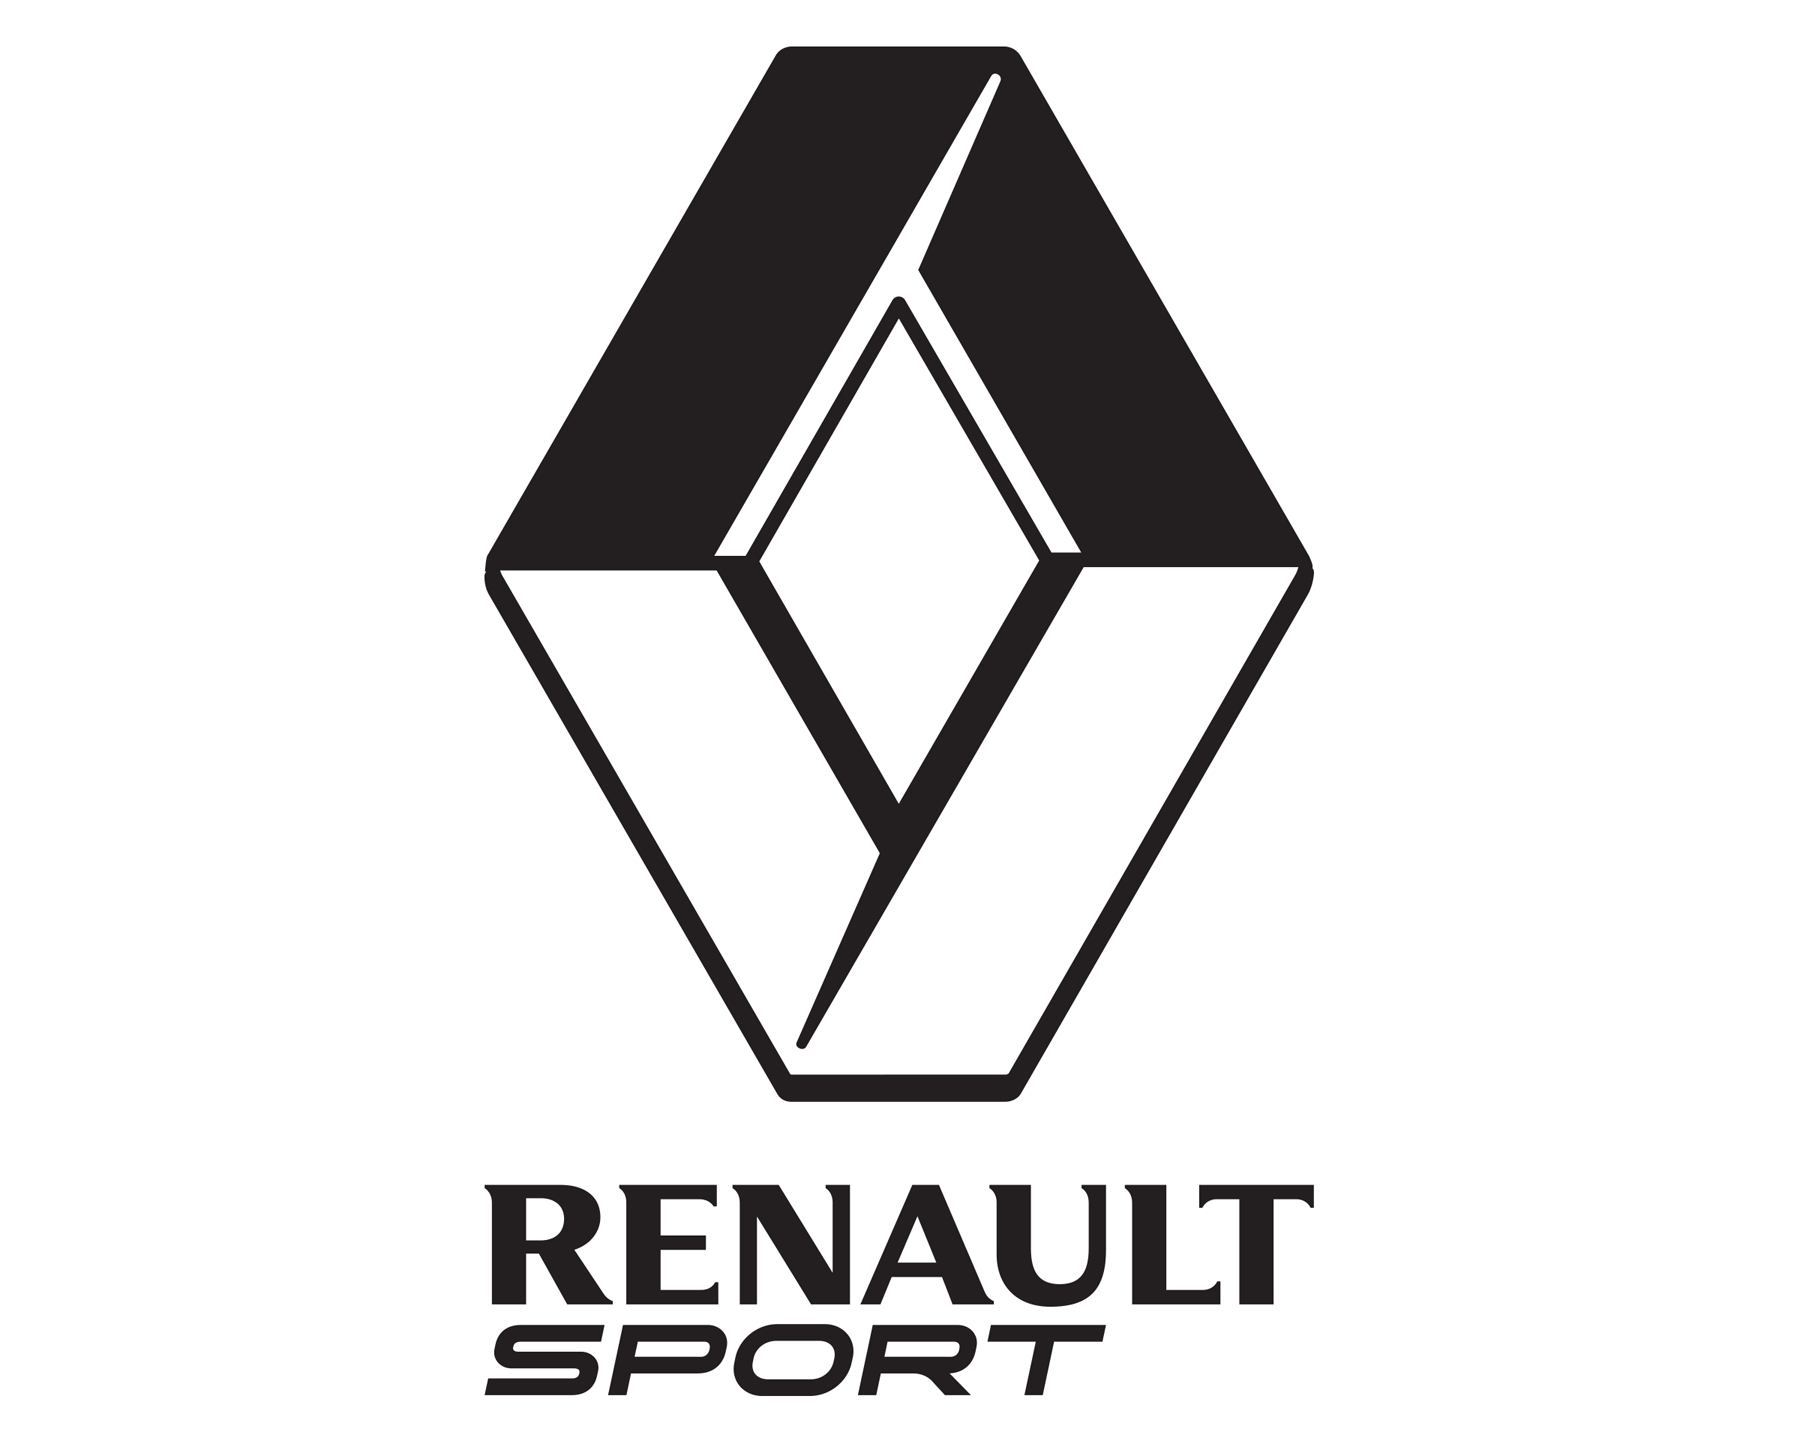 logo renault histoire image de symbole et embl me. Black Bedroom Furniture Sets. Home Design Ideas